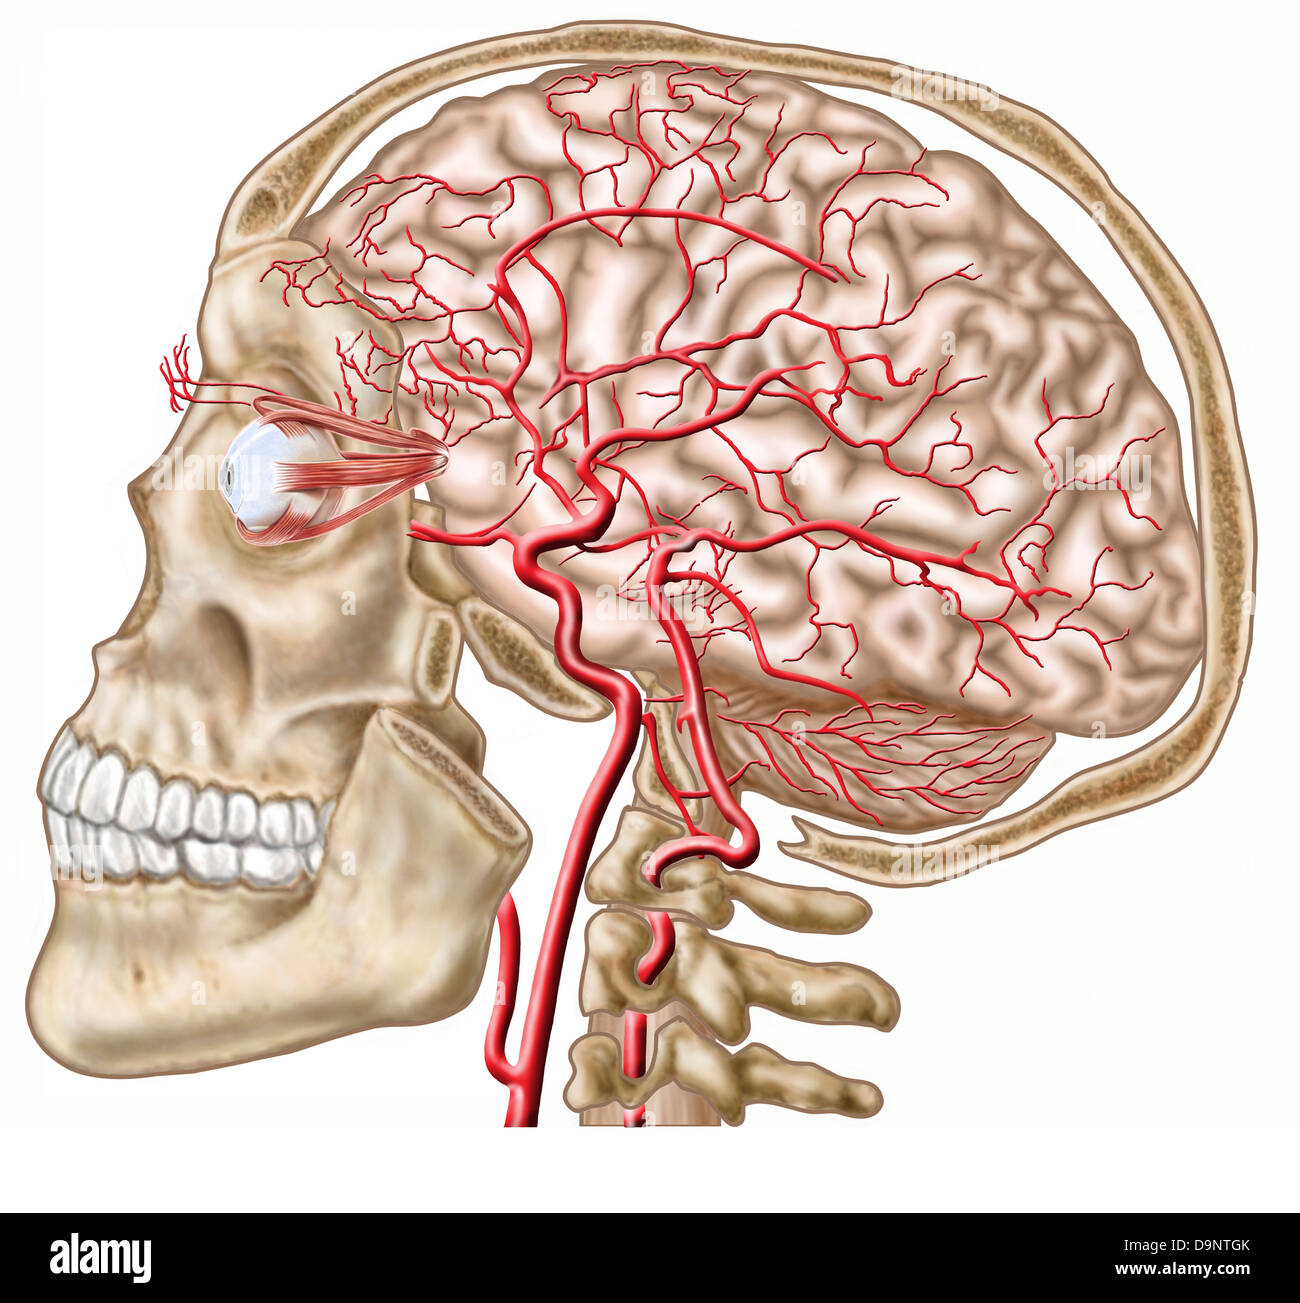 Anatomy of human skull, eyeball and arteries to brain Stock Photo ...